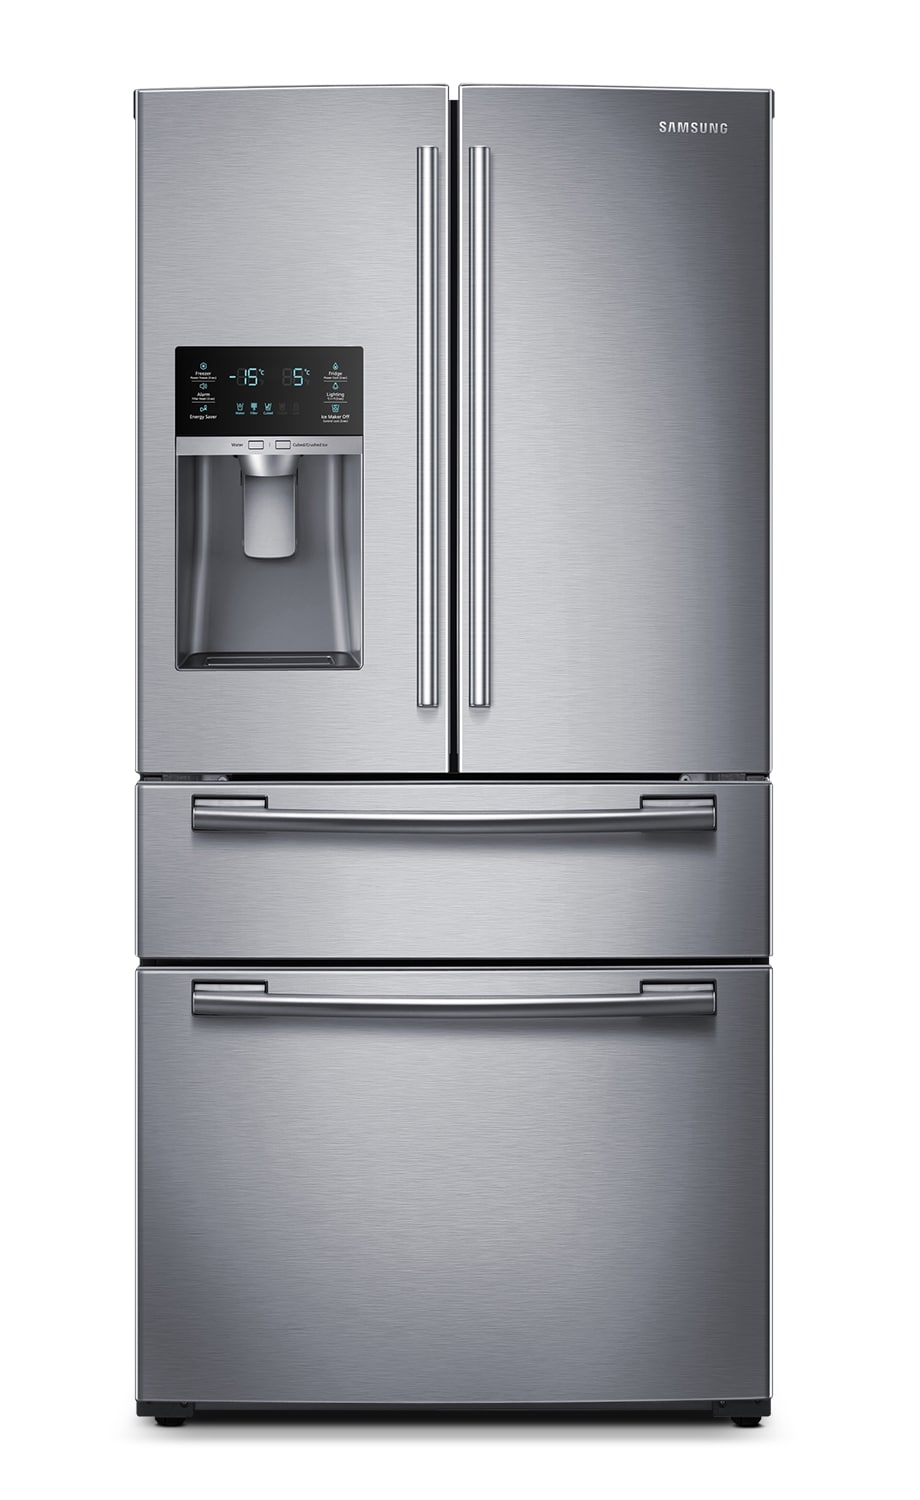 Samsung Stainless Steel French Door Refrigerator (25 Cu. Ft.) - RF25HMEDBSR/AA